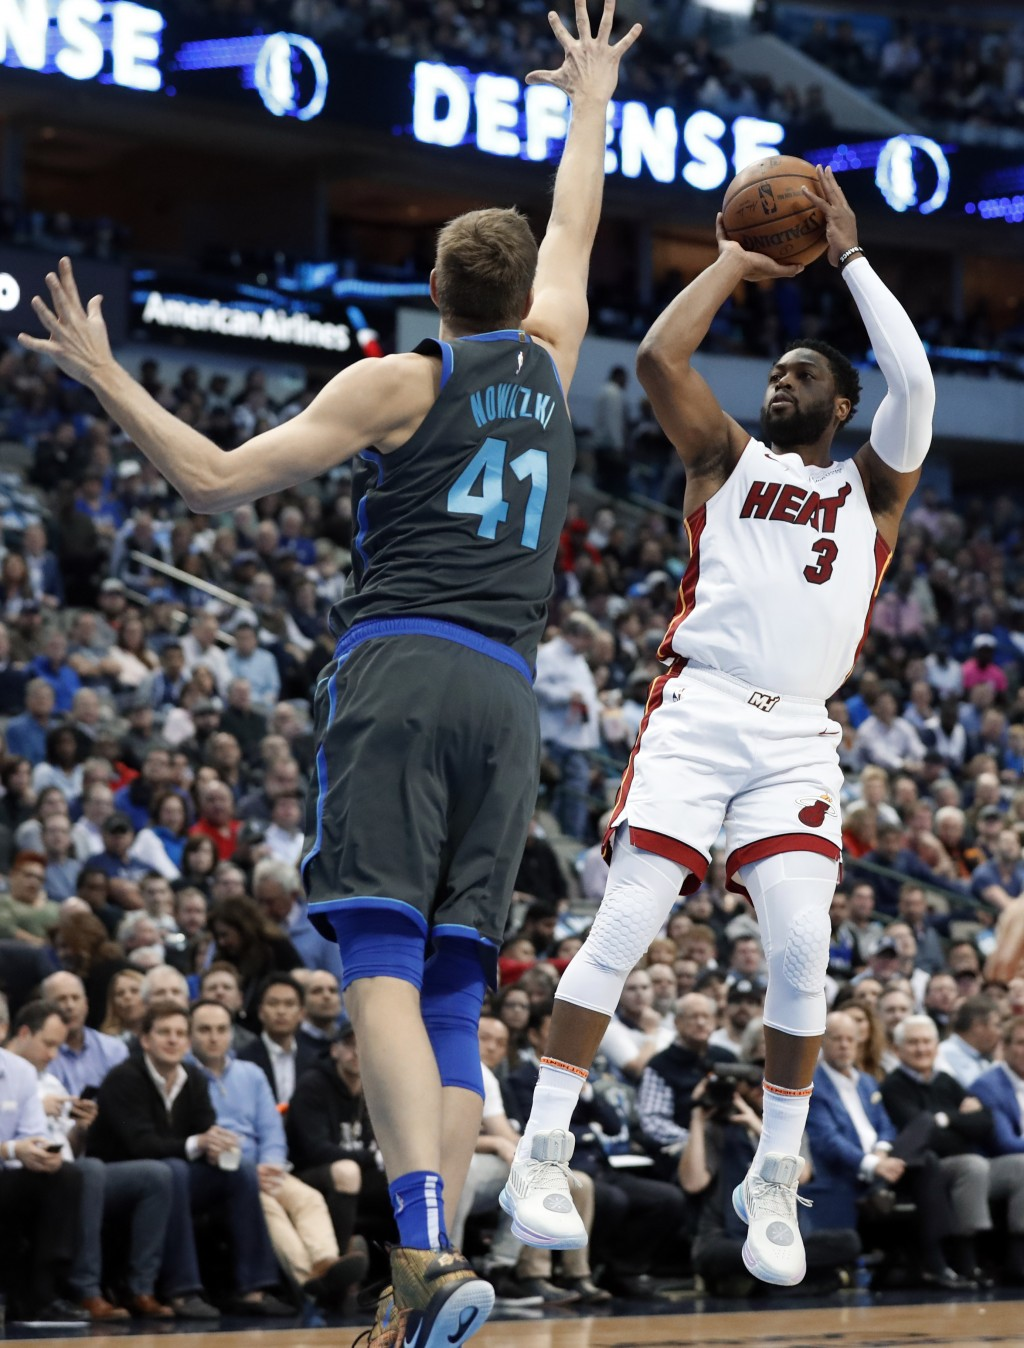 Dallas Mavericks forward Dirk Nowitzki (41) defends as Miami Heat guard Dwyane Wade (3) shoots during the first half of an NBA basketball game in Dall